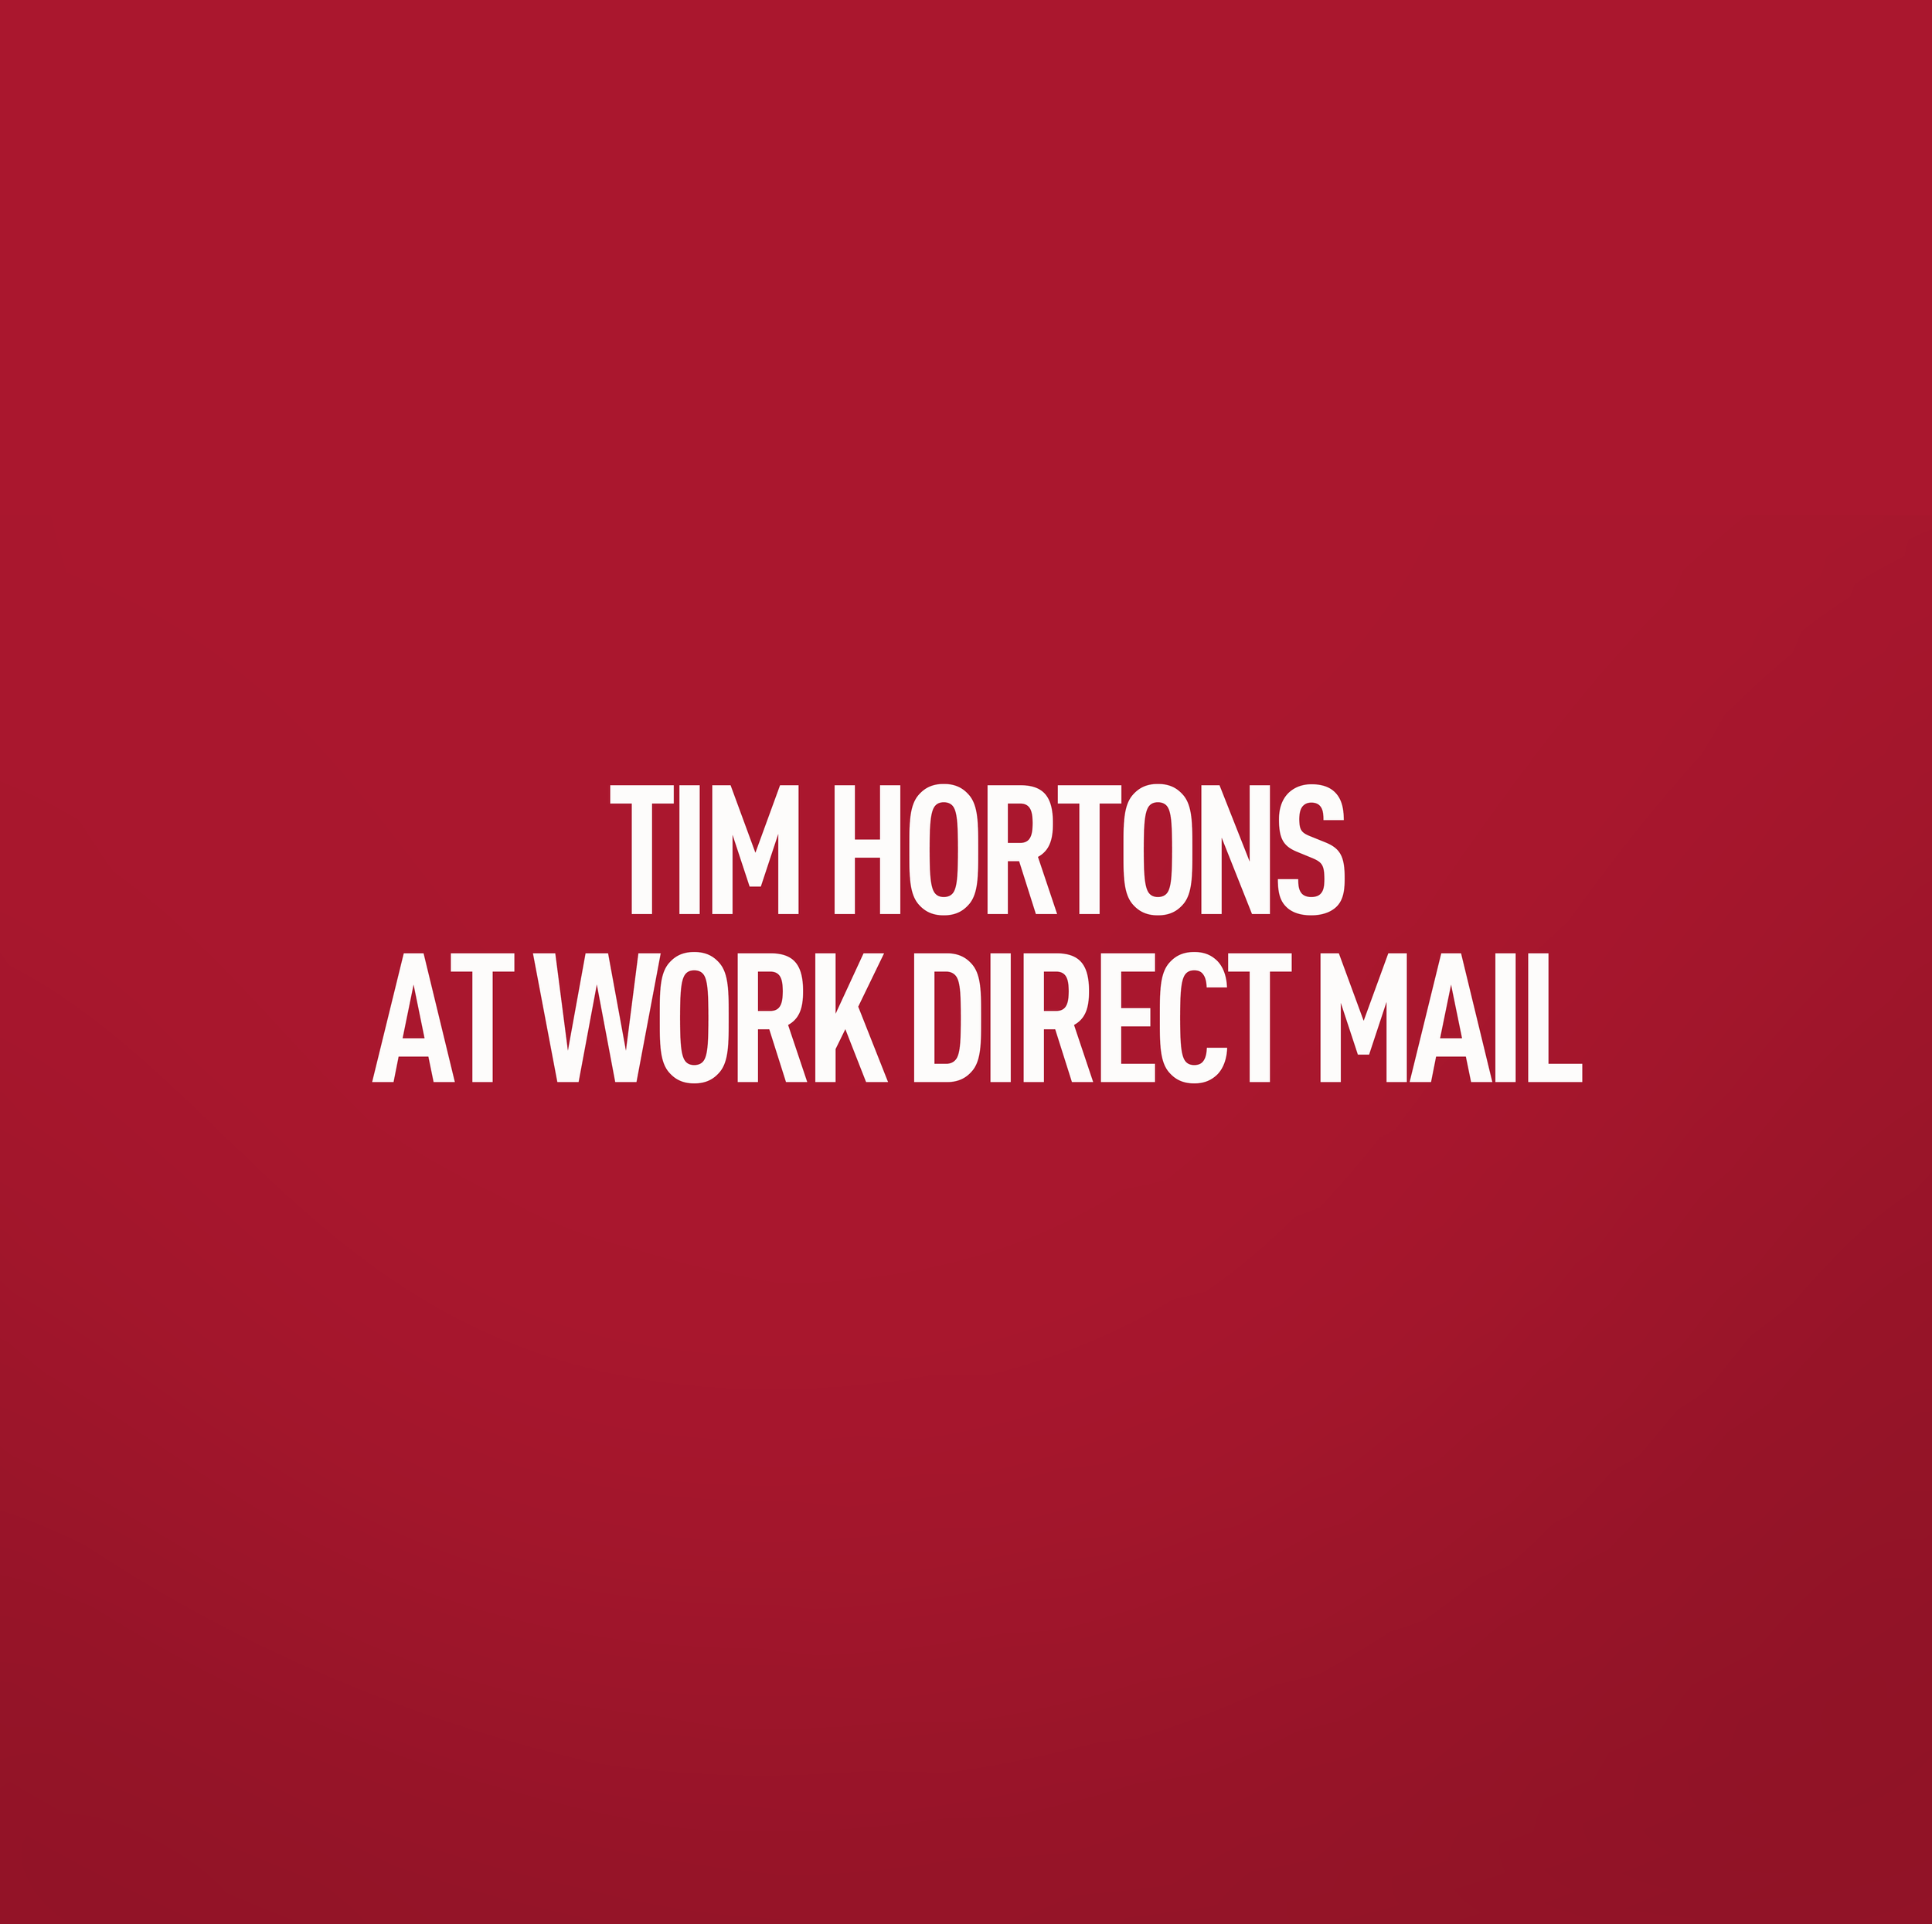 tim-hortons-at-work-direct-mail-title.png